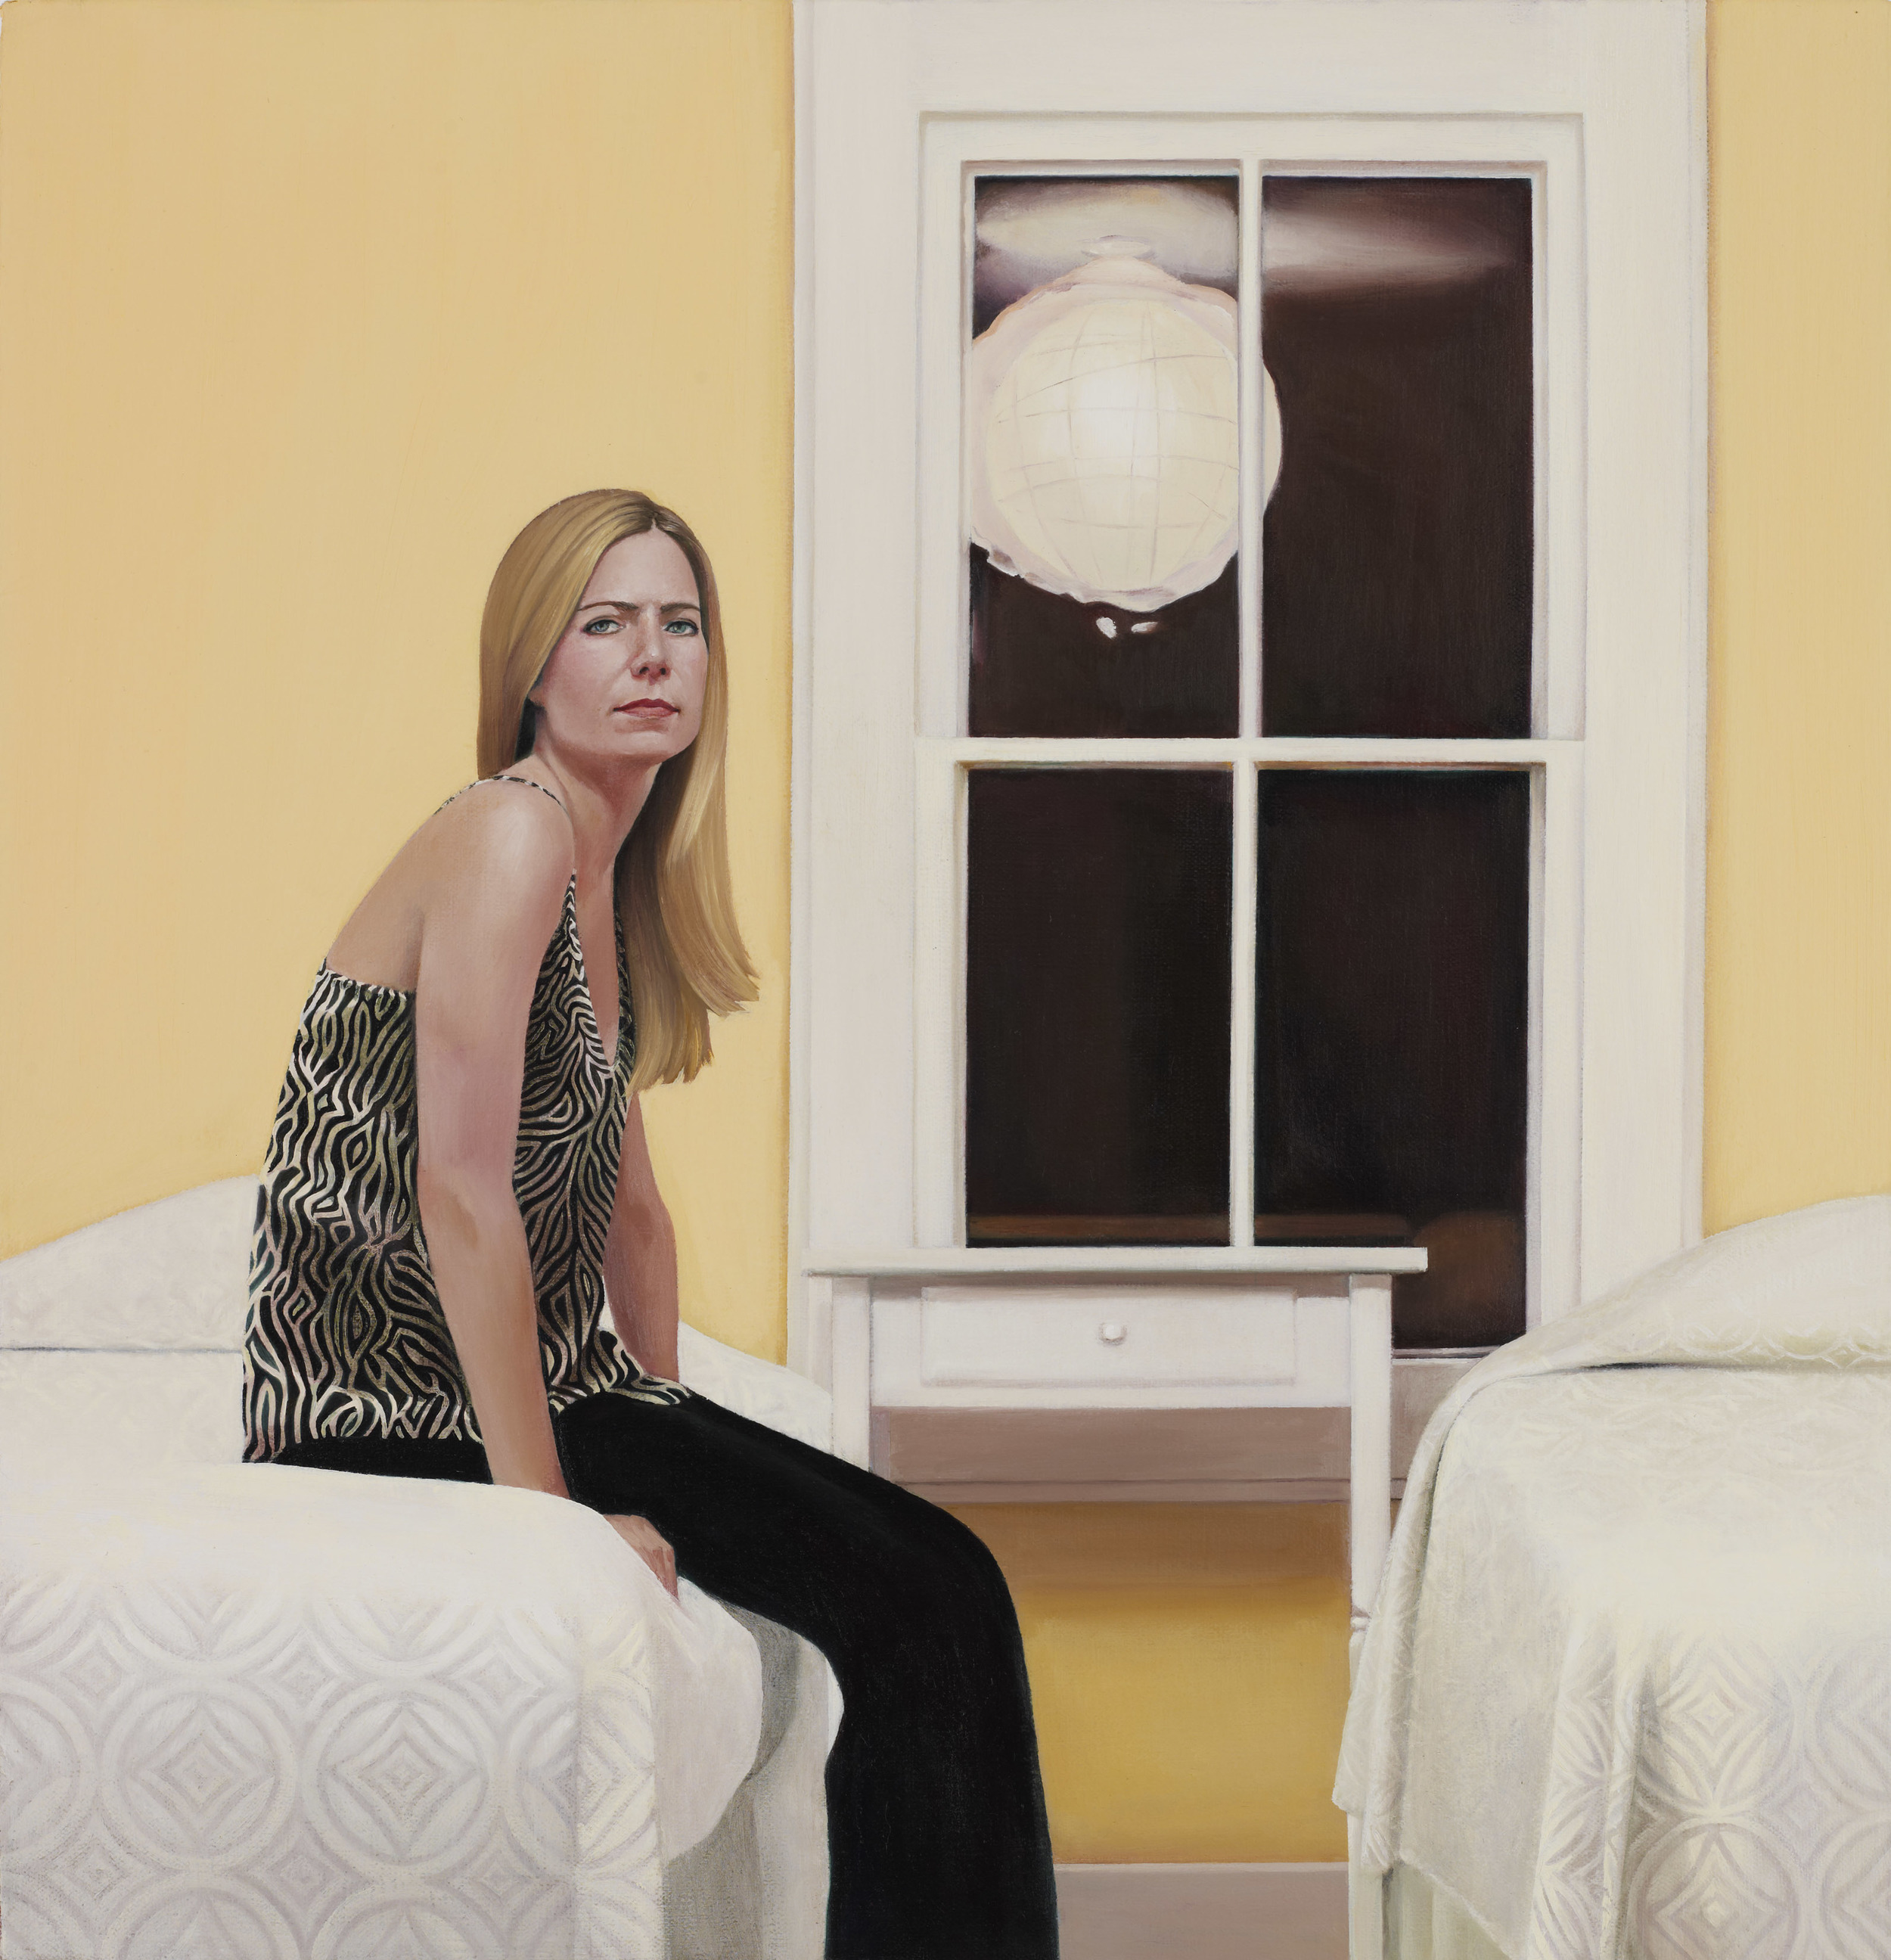 The Yellow Room, 2012 oil on canvas, 19 x 18 inches